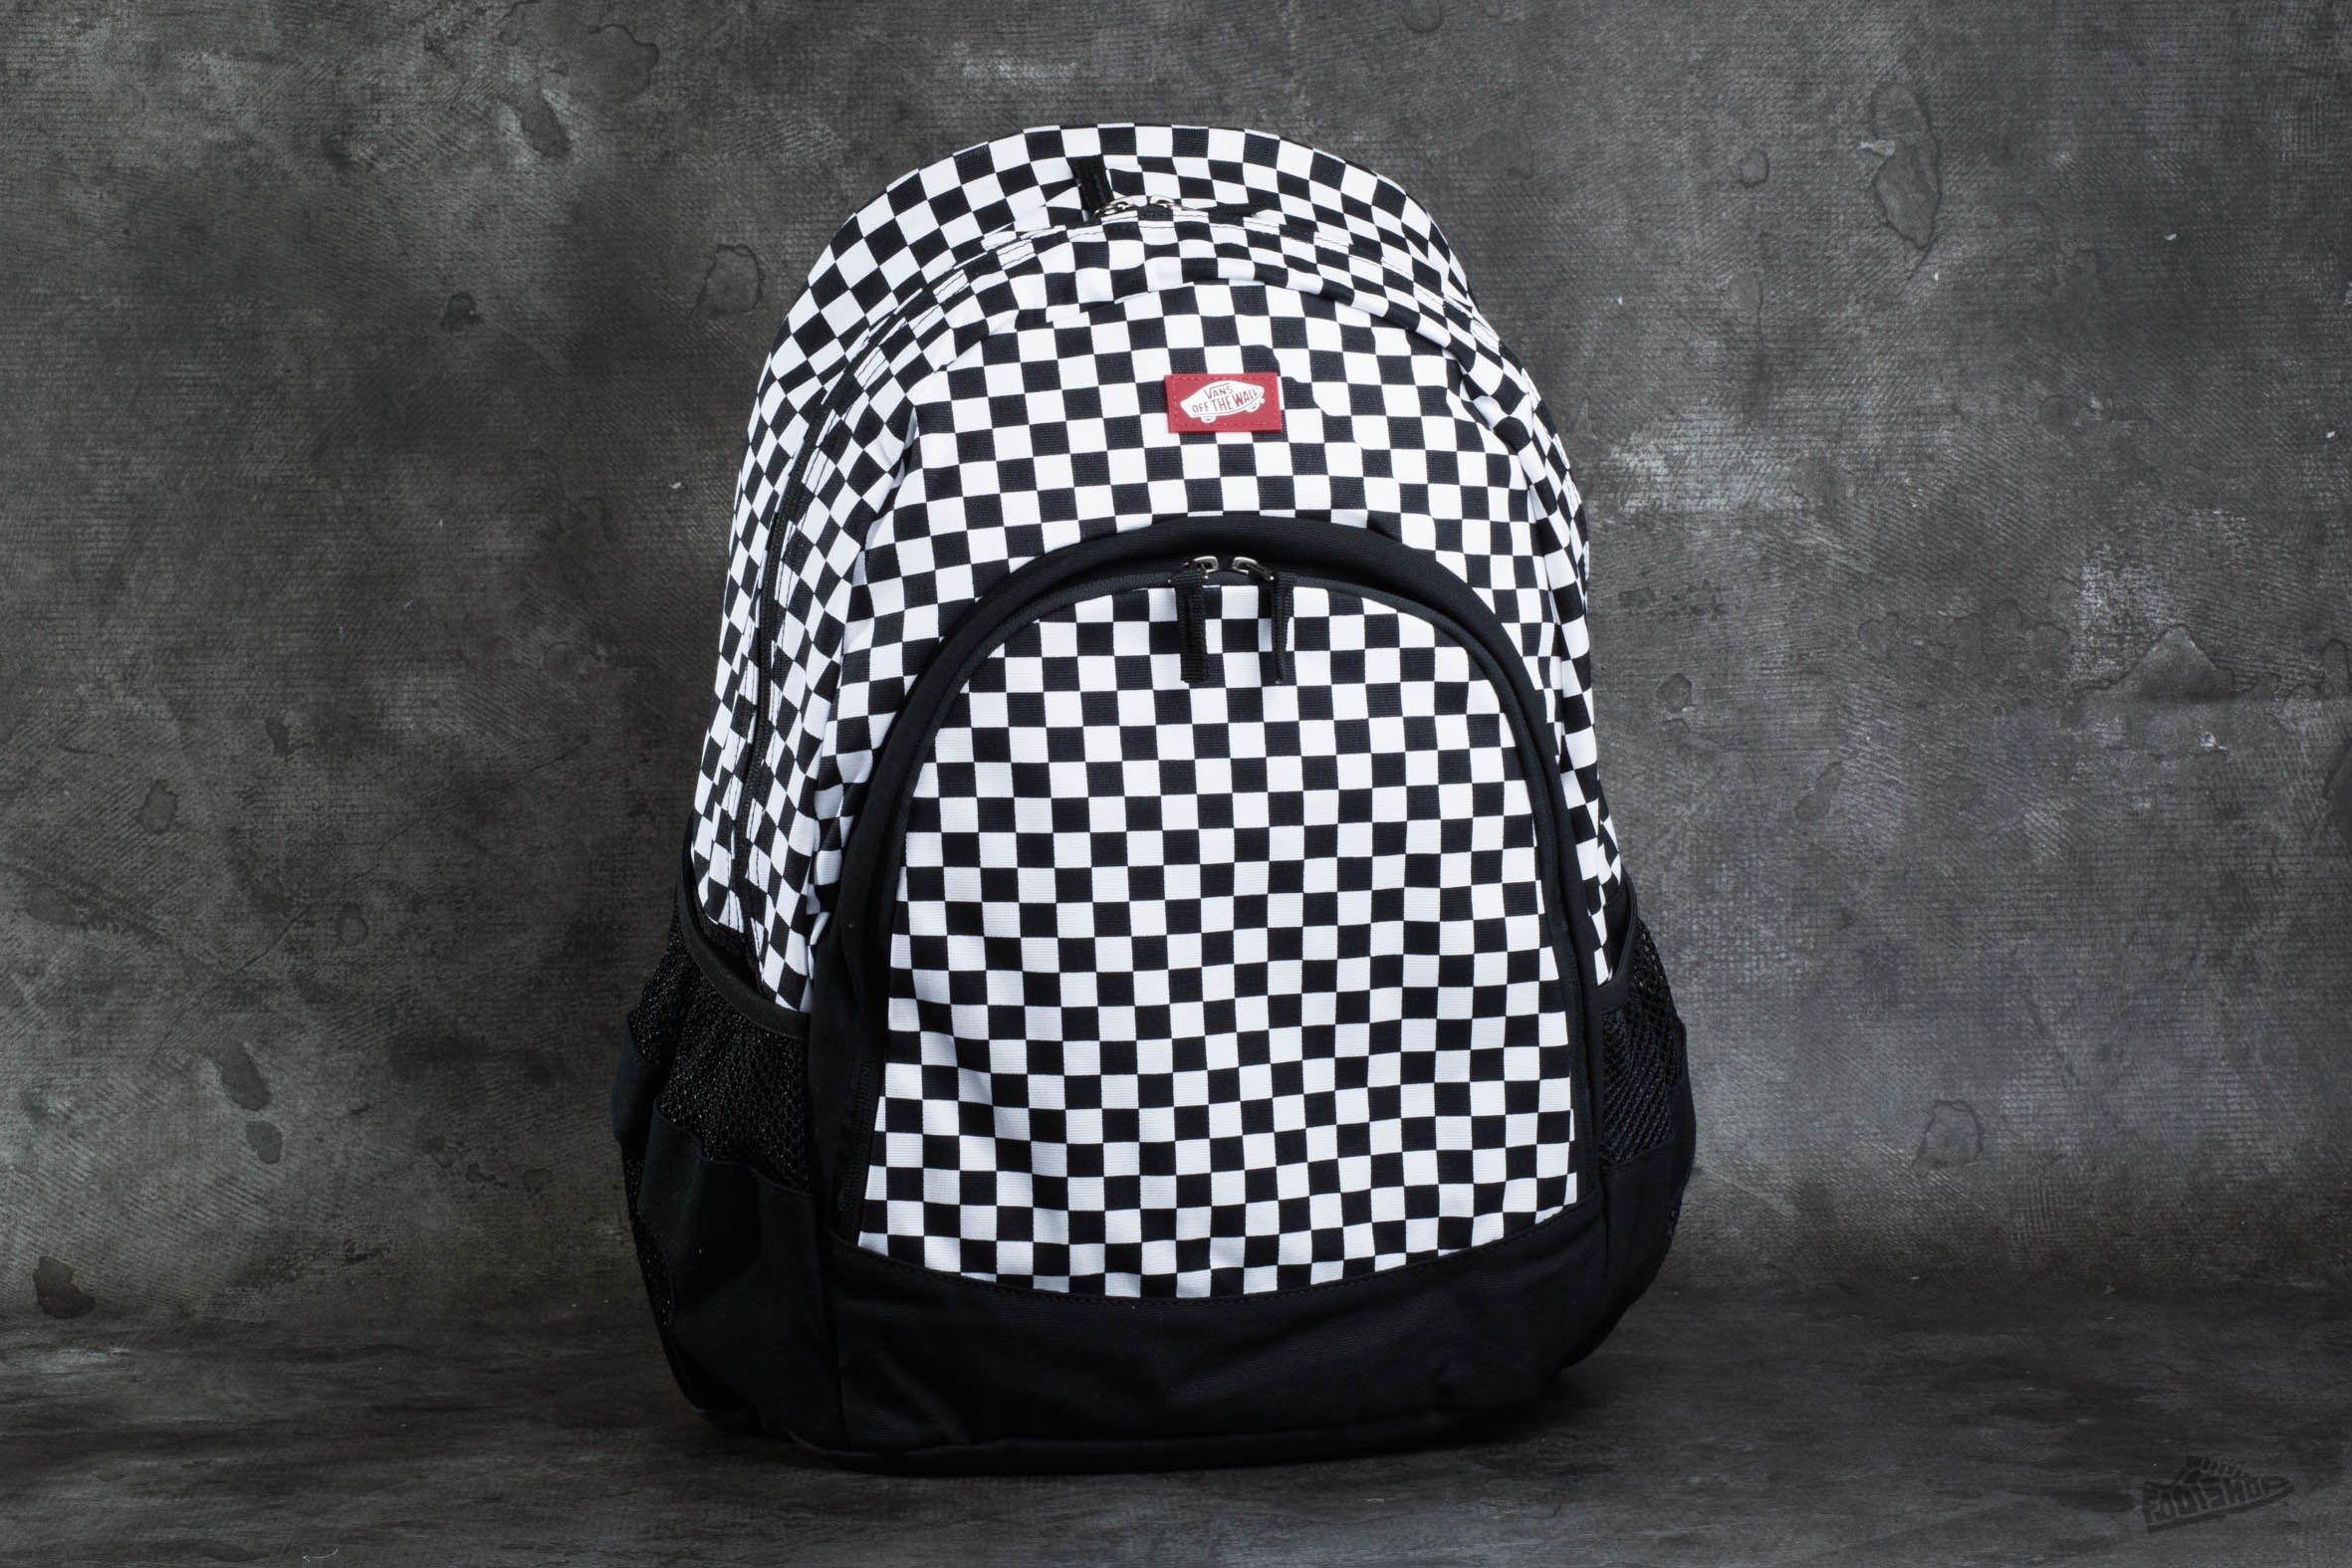 dc1046a689 Vans VAN DOREN BACKPACK Black White